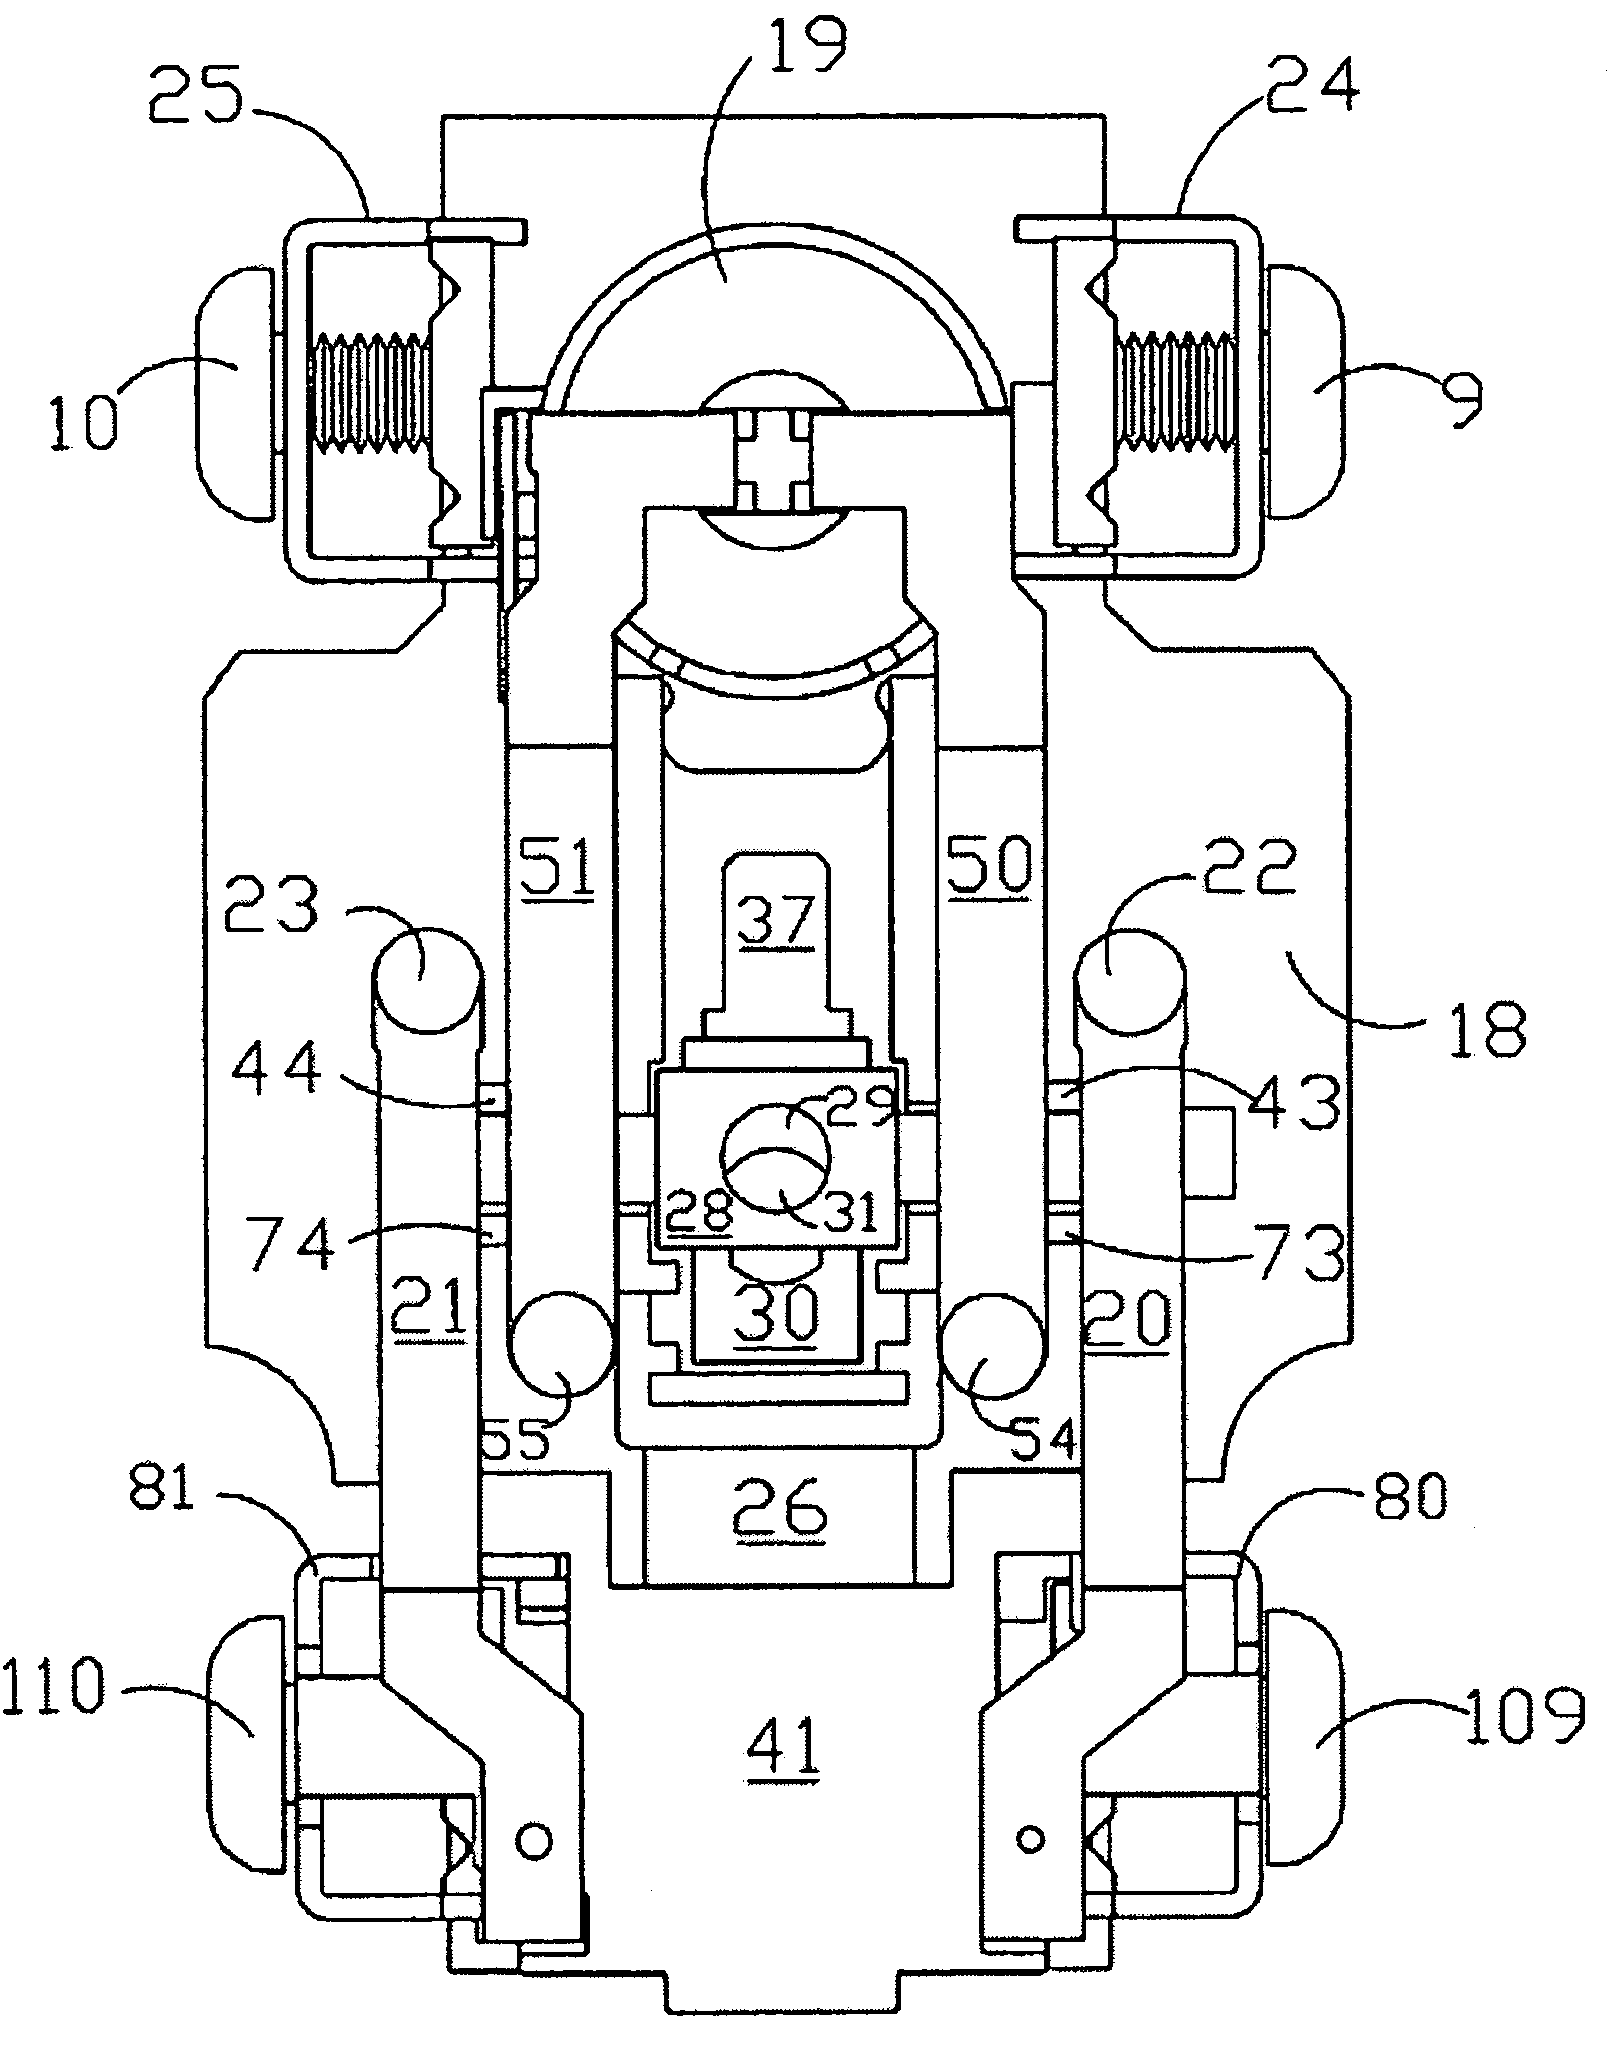 patent us7195500 - ground fault circuit interrupter with end of life indicators